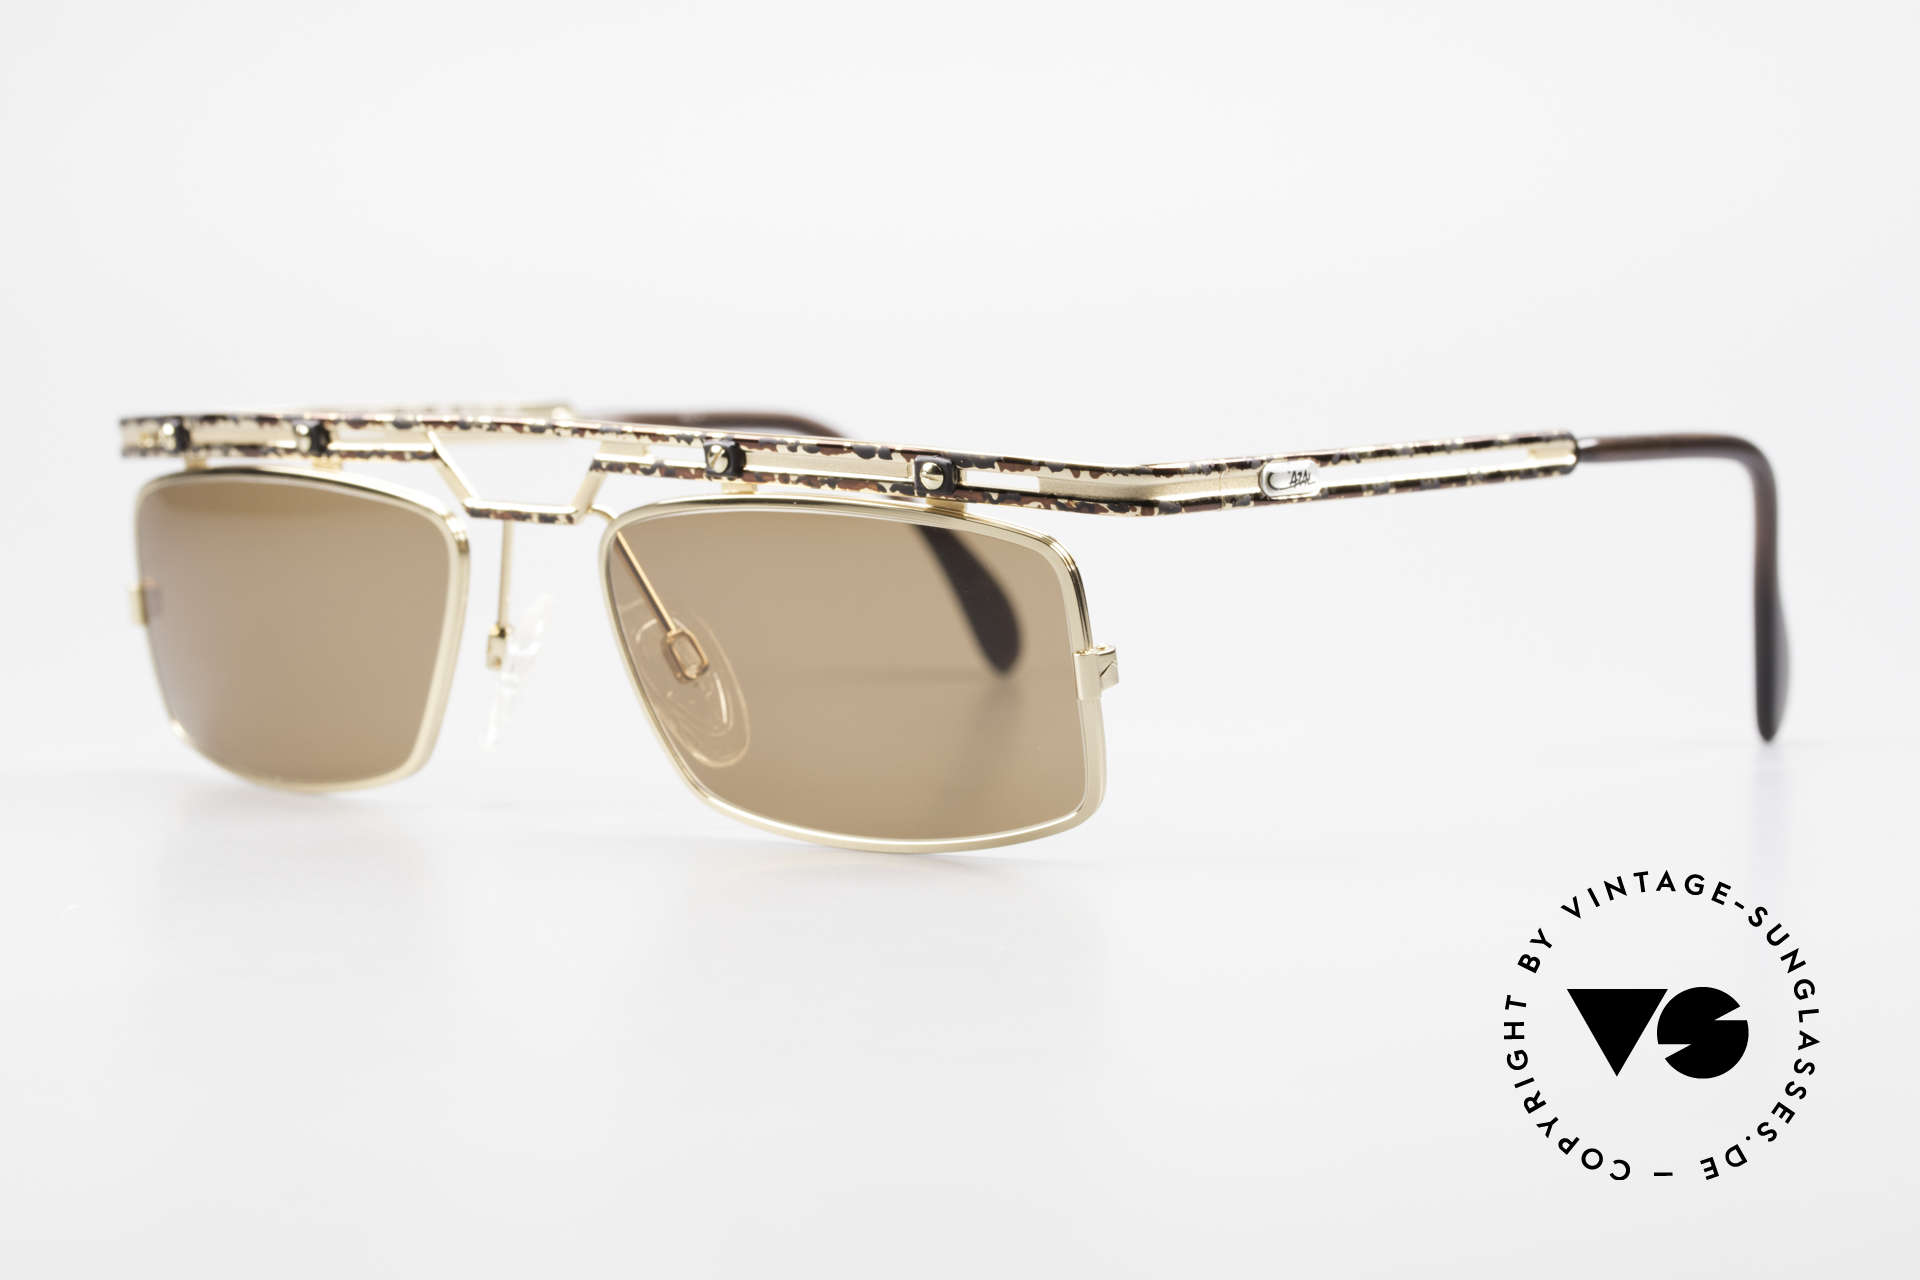 Cazal 975 Square Designer Sunglasses 90s, great metalwork and overall craftmanship; durable!, Made for Men